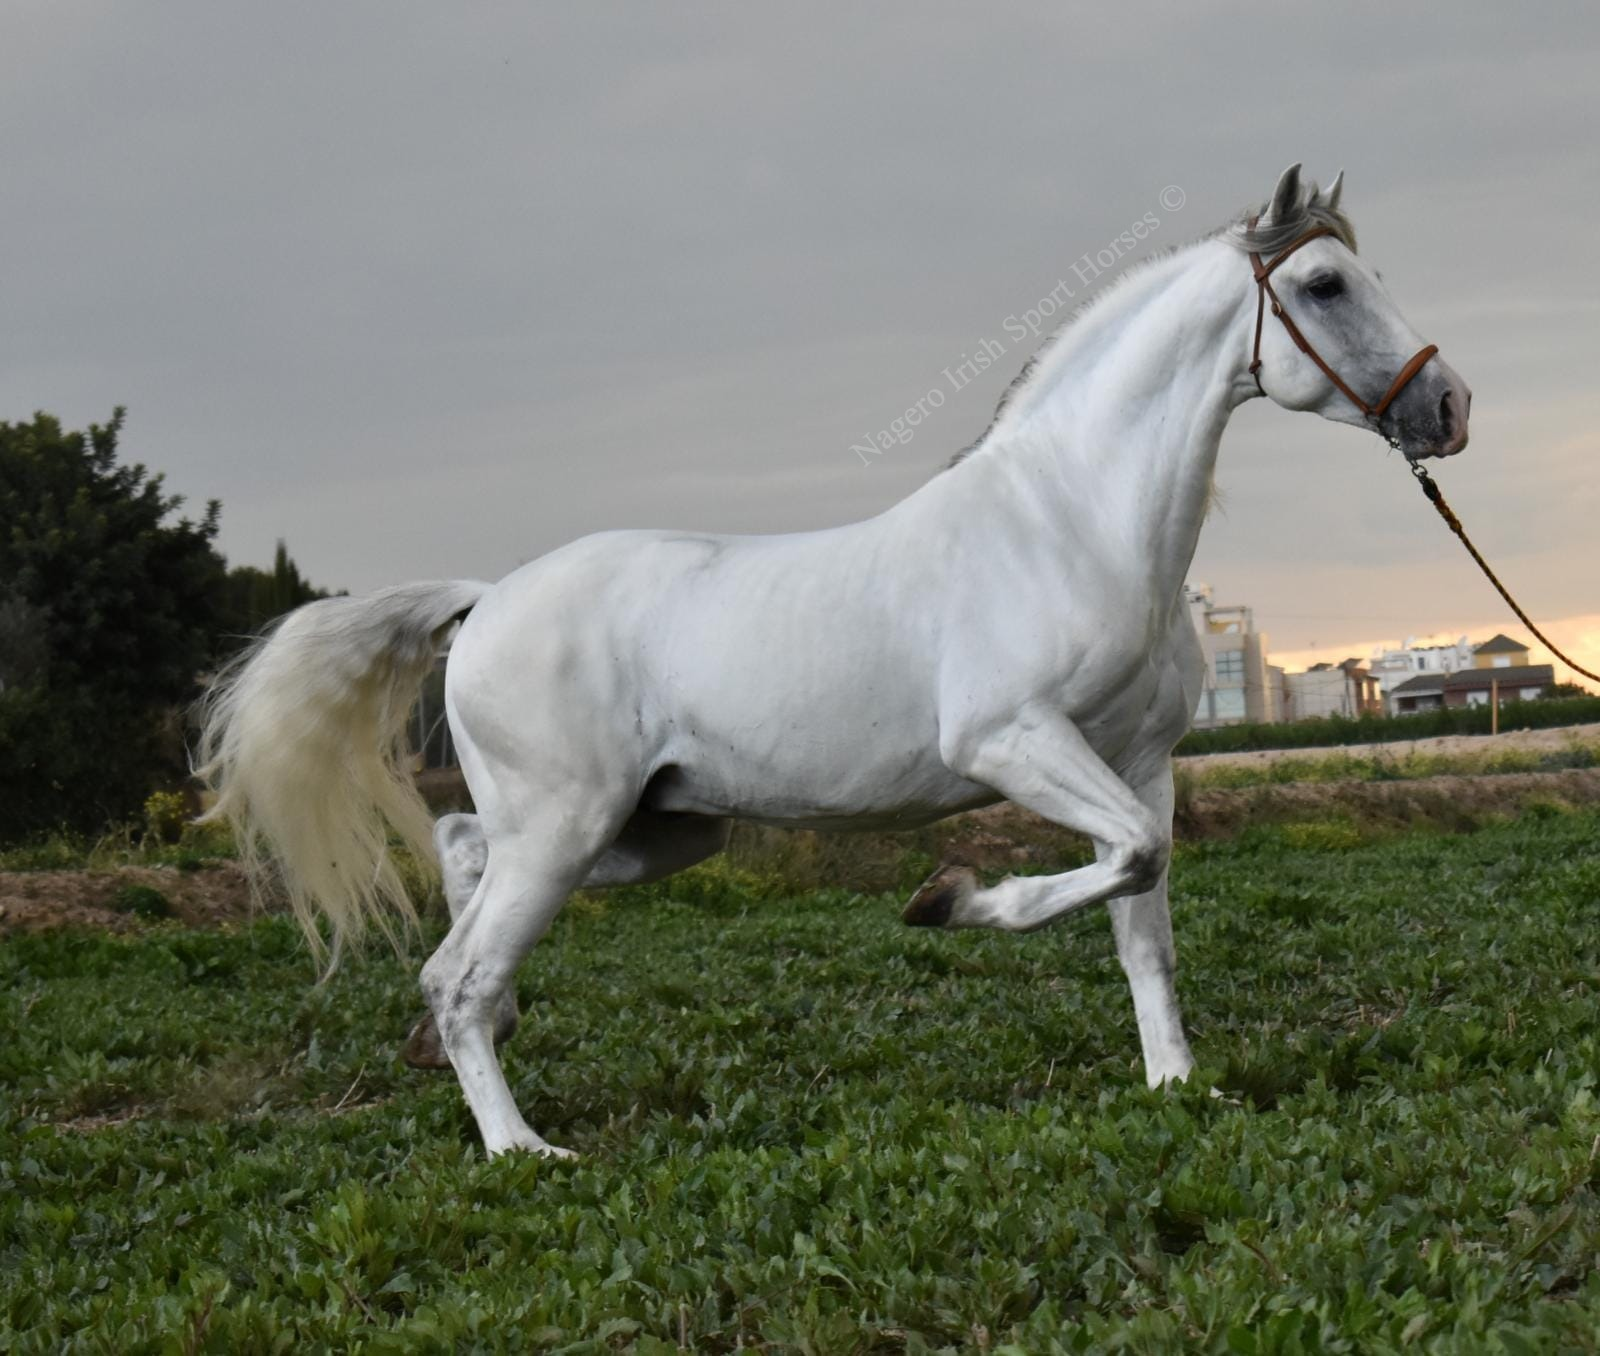 Stunning PRE with looks and temperament 7